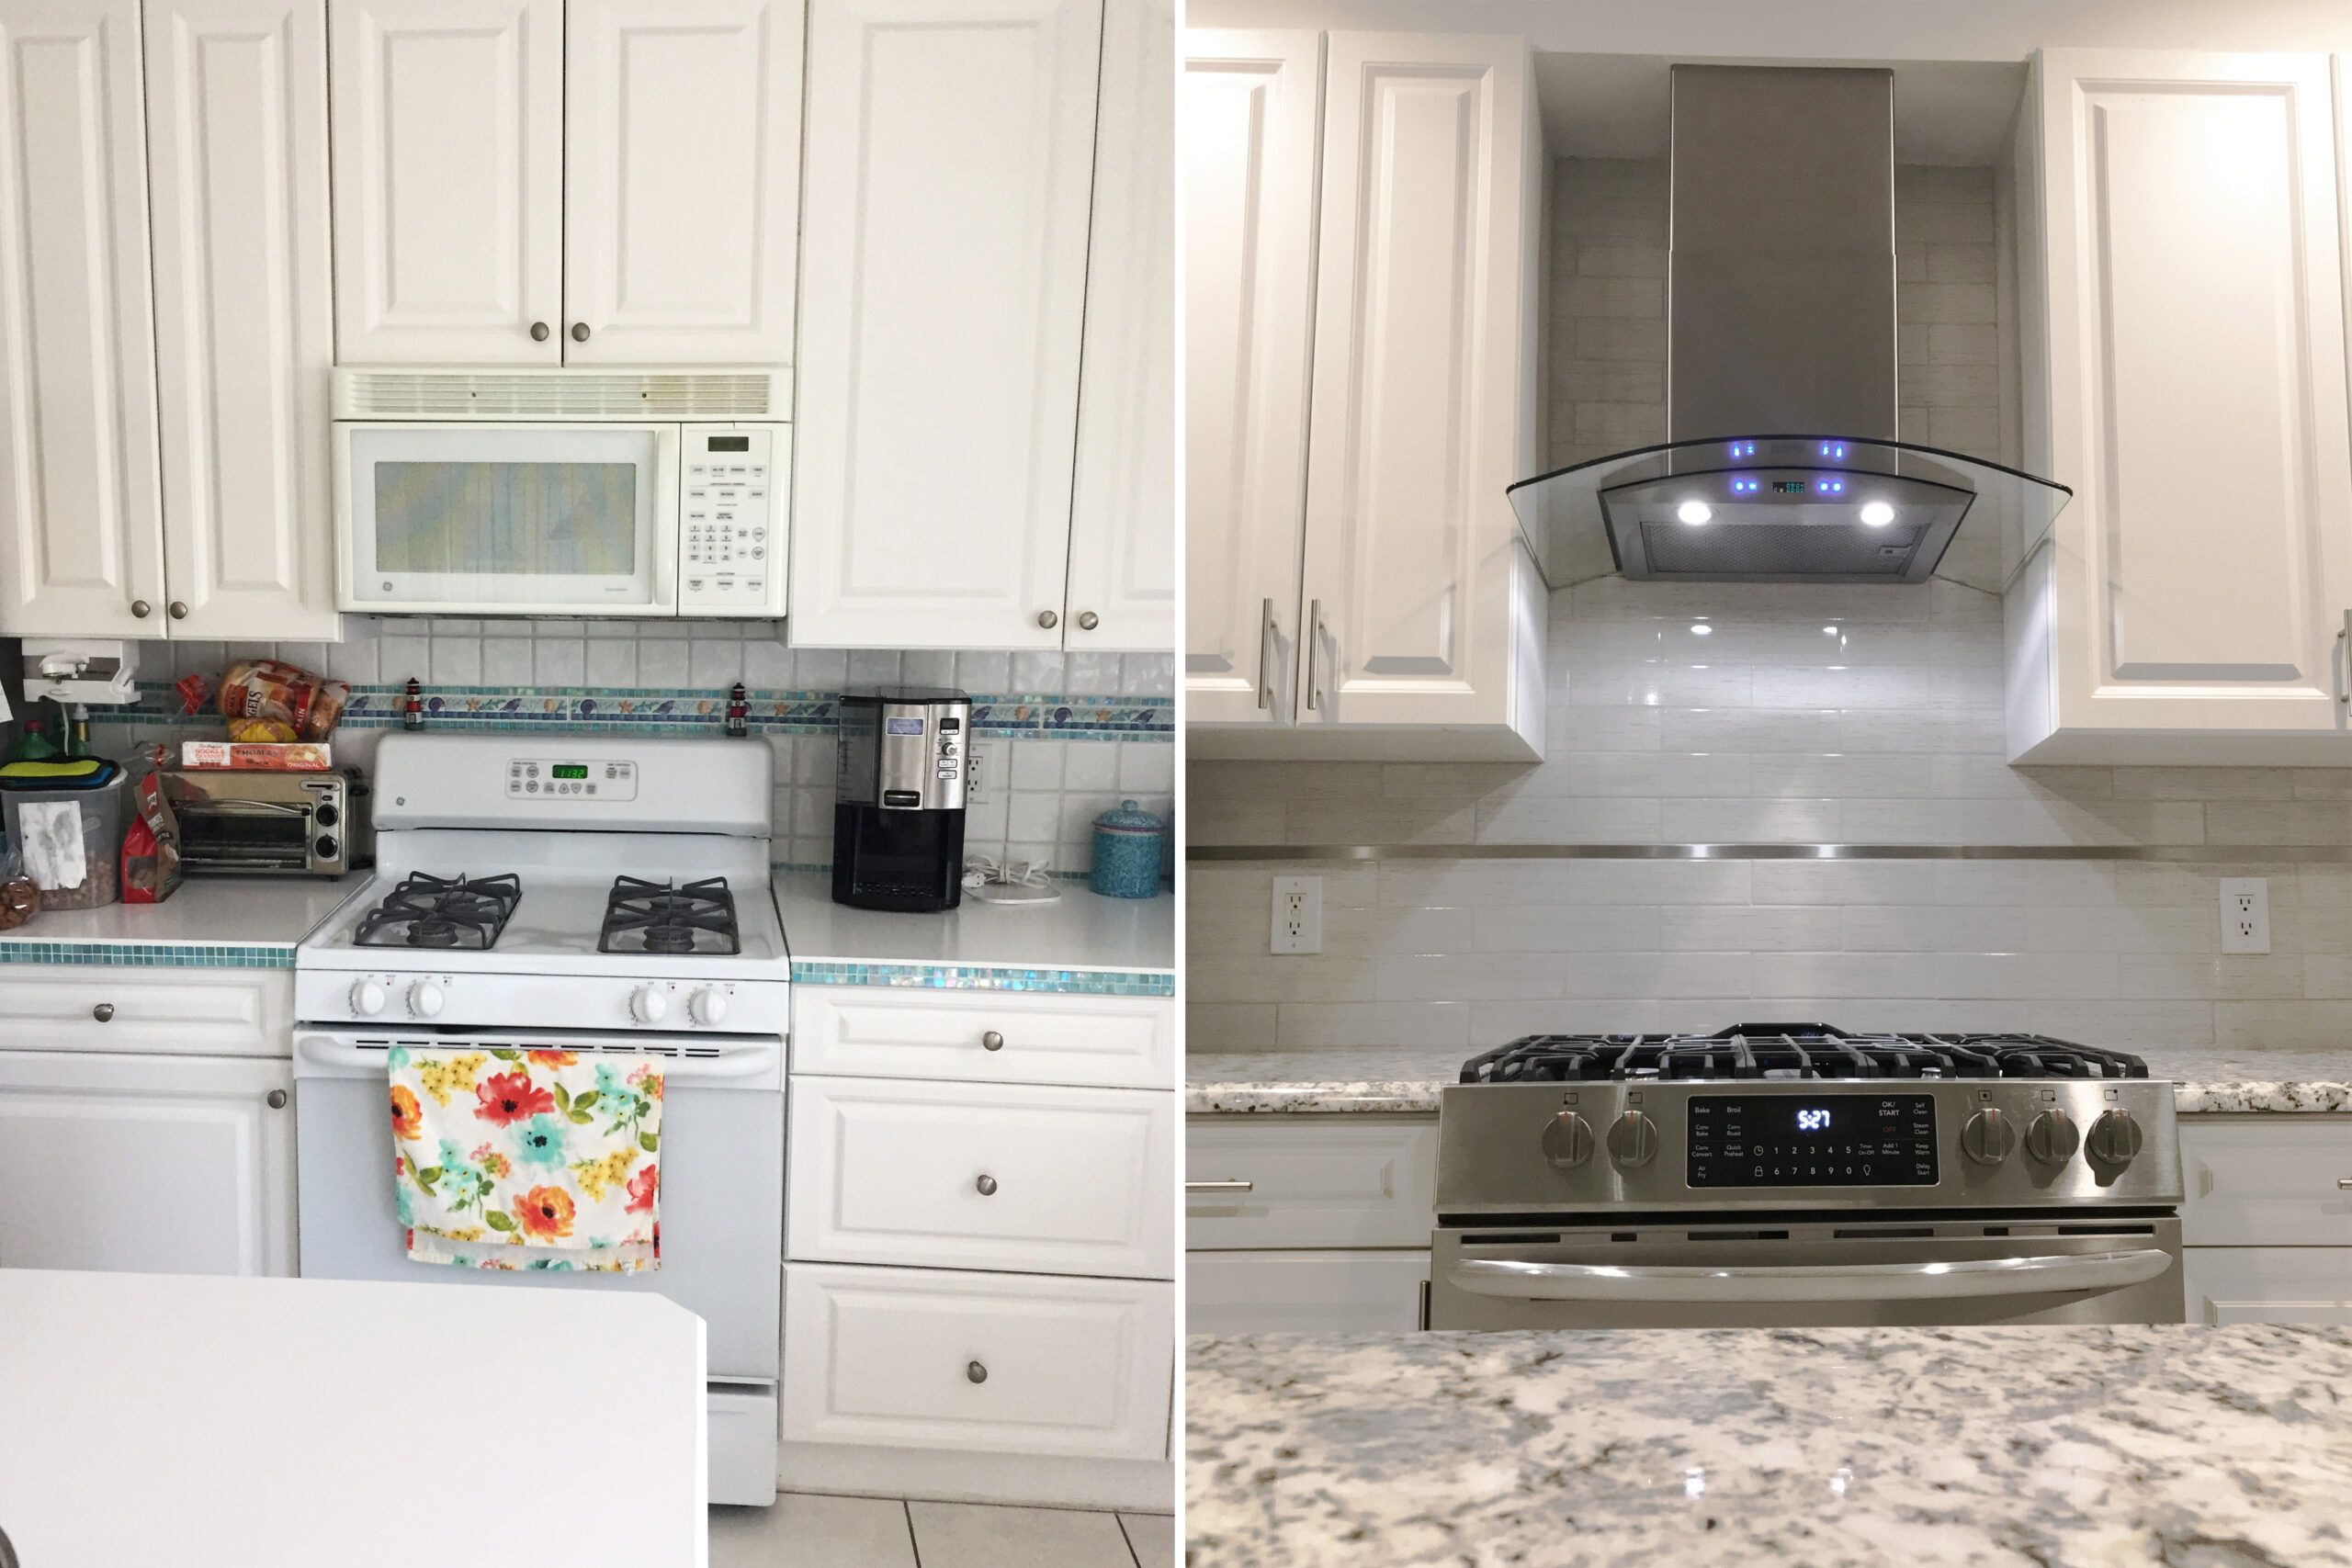 Should I Purchase A Vent Hood Or Microwave Vent Hood Kitchen Ventilation Microwave Vent Hood Kitchen Hoods